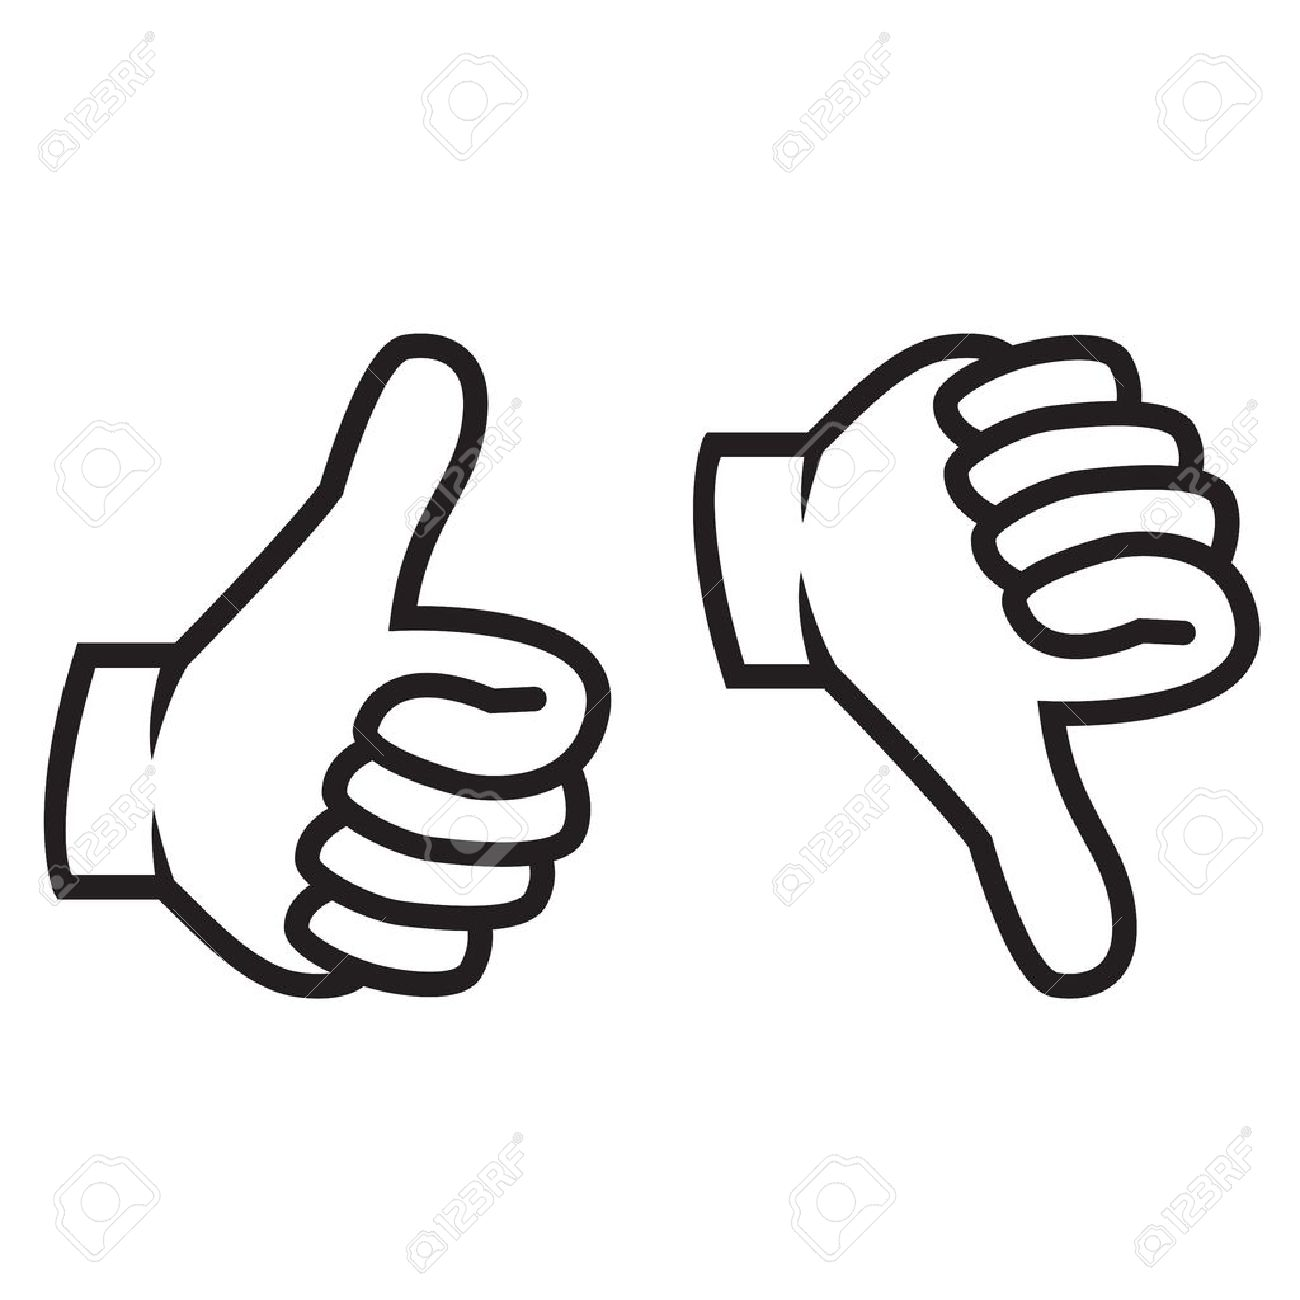 Thumbs up and down gesture - 37189131